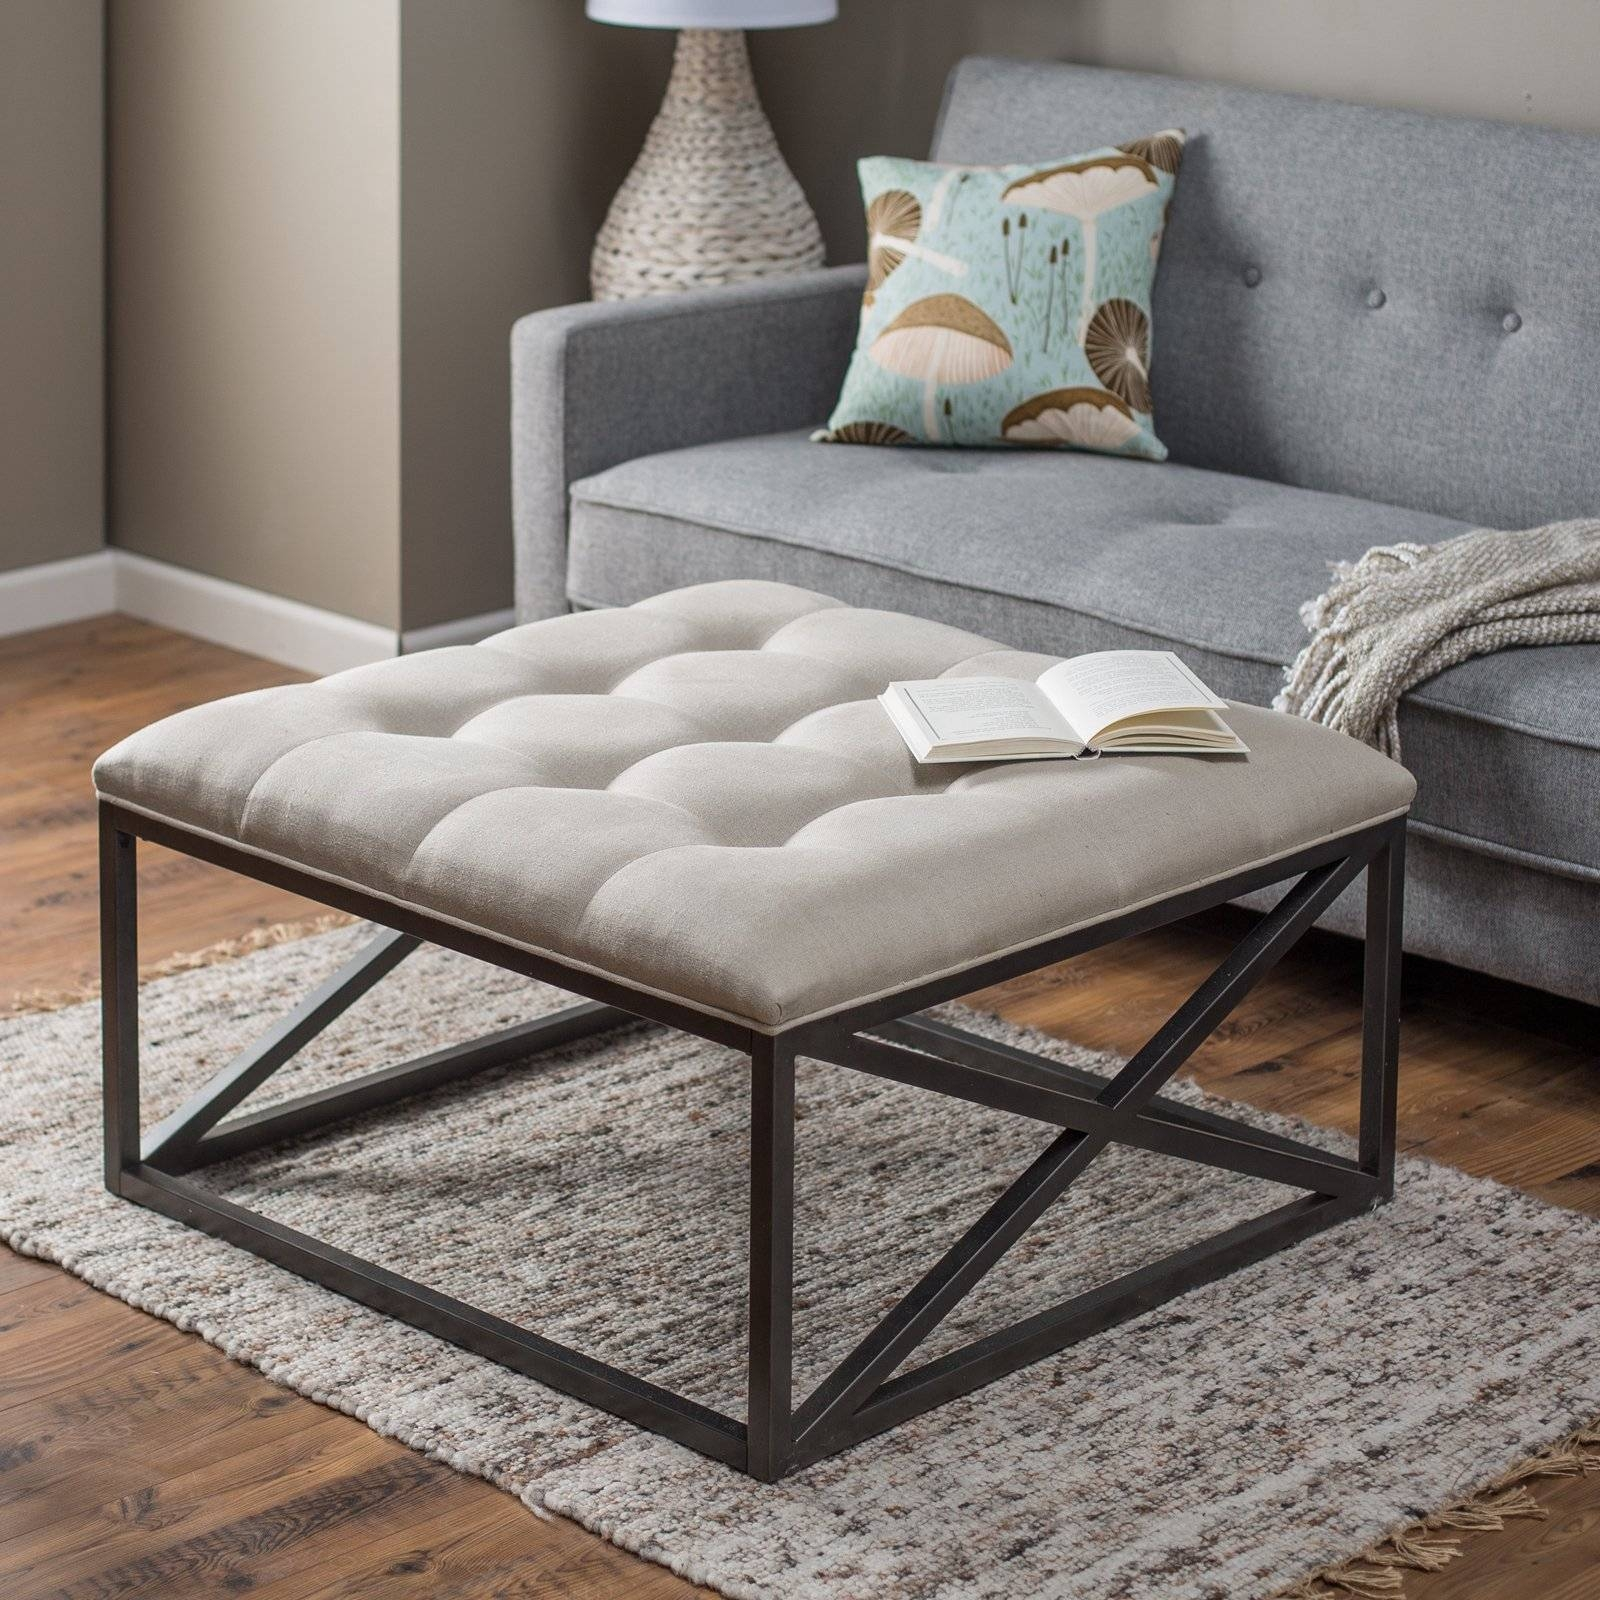 Coffee Table: Fascinating Upholstered Ottoman Coffee Table Design with Round Upholstered Coffee Tables (Image 11 of 30)